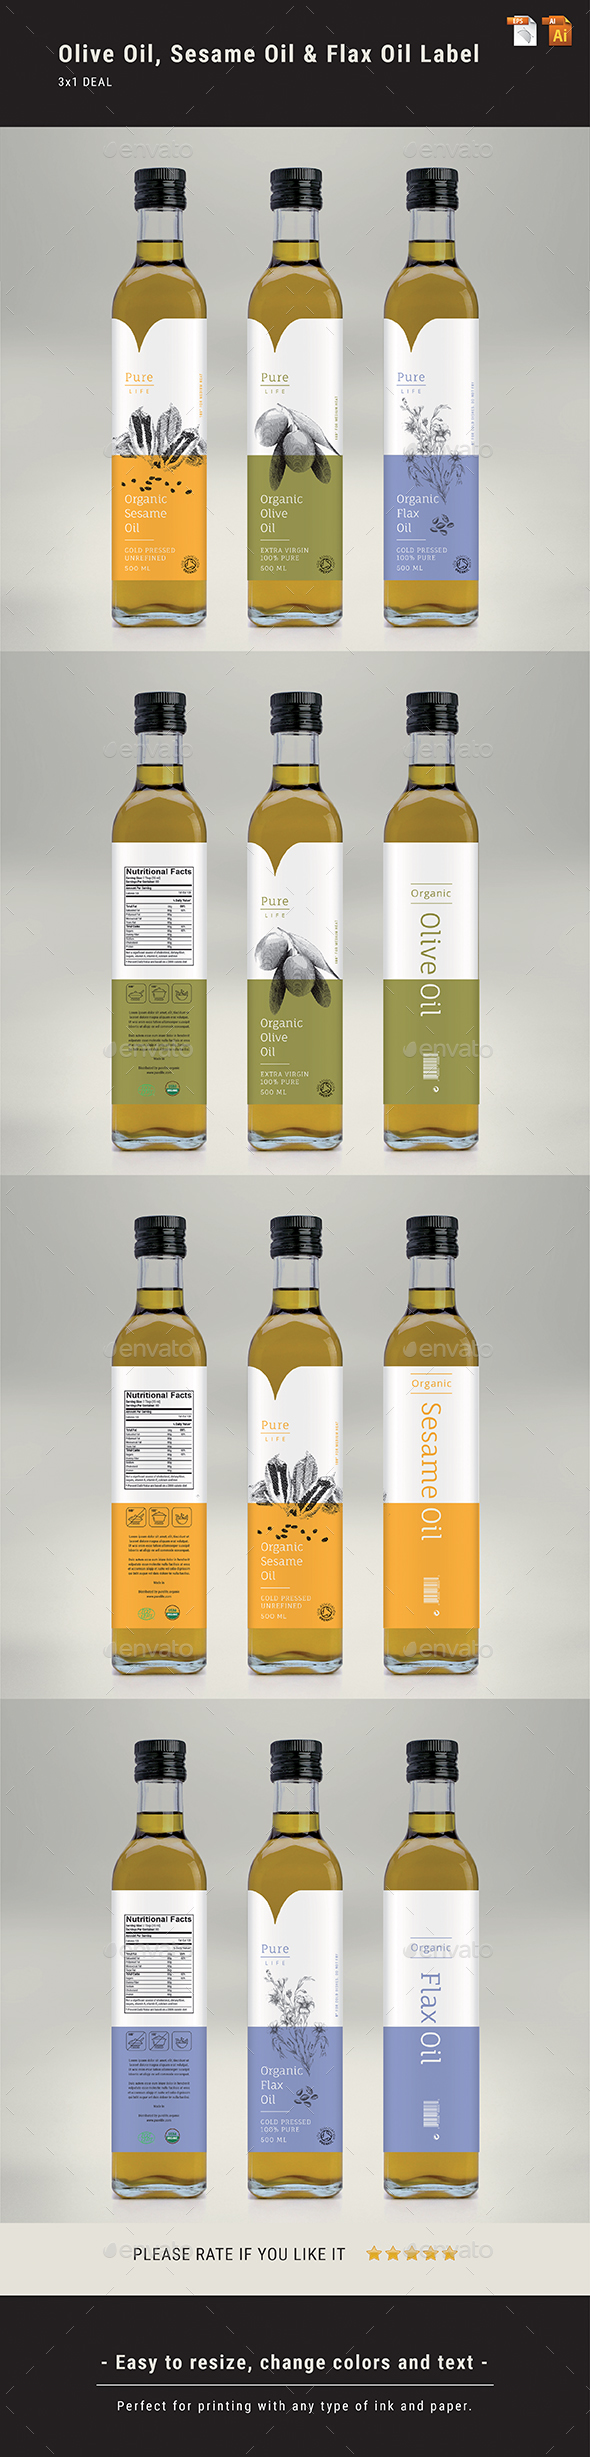 GraphicRiver Olive Oil Sesame Oil & Flax Oil Label 21030946